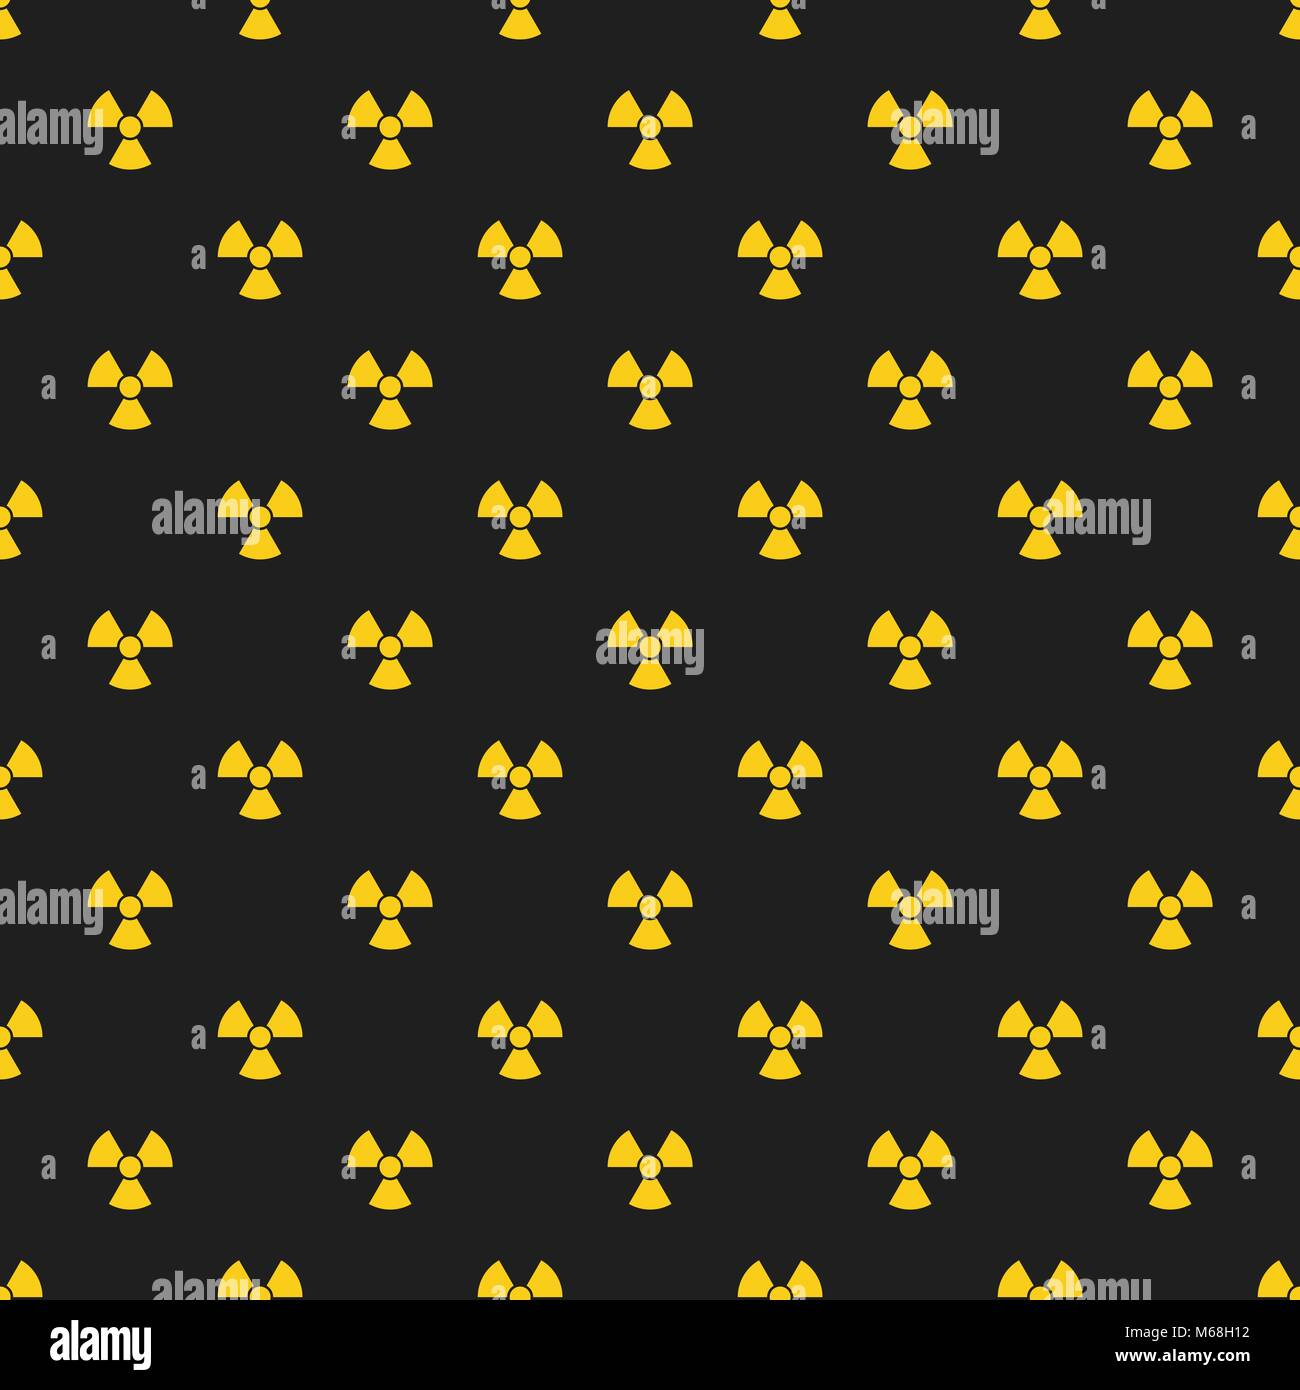 Abstract pattern. Yellow marks of radiation on a black background. Irradiation. Dangerous area. Vector illustration - Stock Image